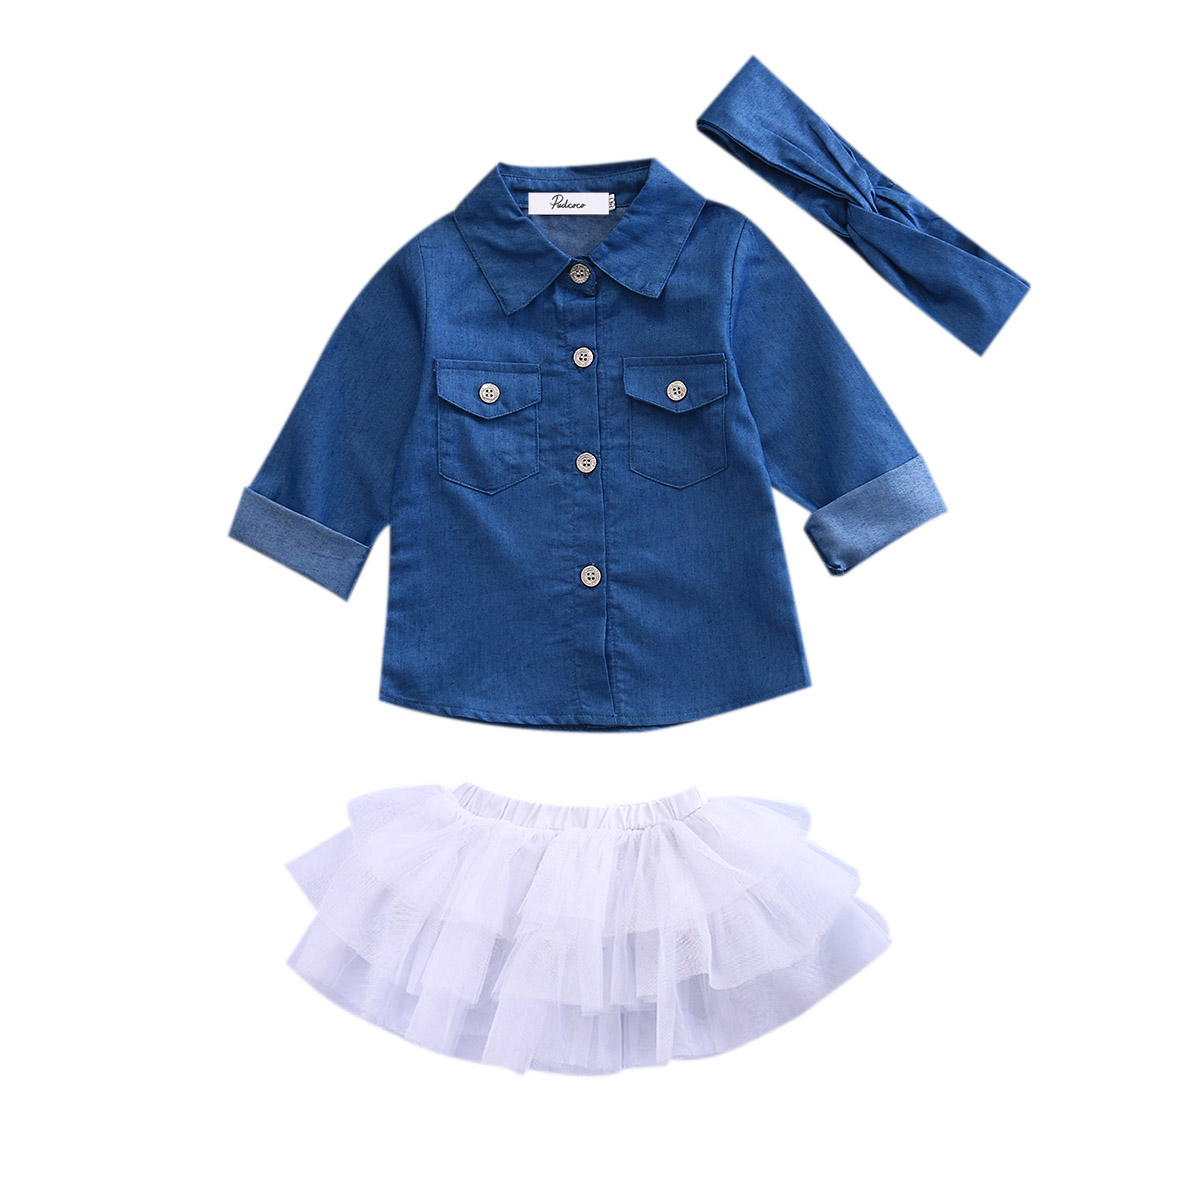 Girls Tops Shirt Tutu Skirts Ruffles Cute Party 3pcs Outfits Clothing Set Toddler Kids Baby Girl Clothes Set Denim 2016 new fashion boutique outfits for omika baby girls sets with 2 pcs cute print long sleeve tops bow tutu skirts size 4 12y